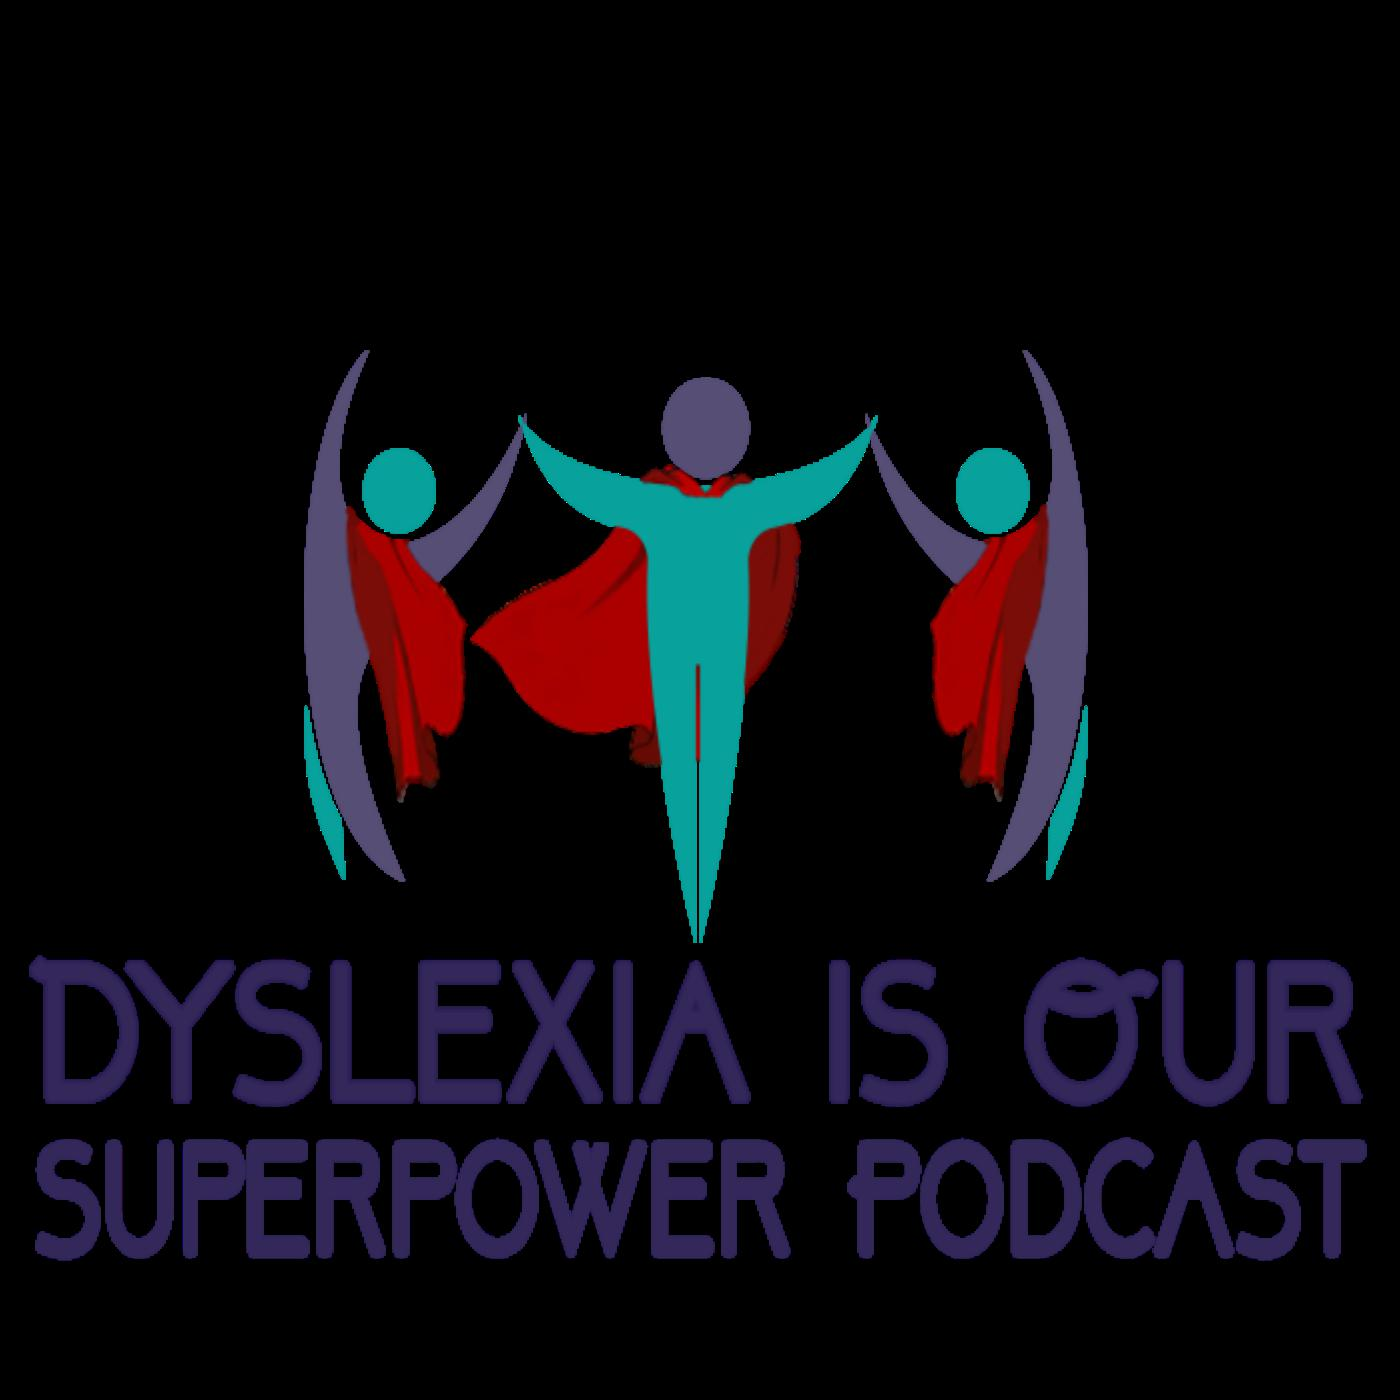 Dyslexia Is Our Superpower Podcast - Gibby Booth Jasper